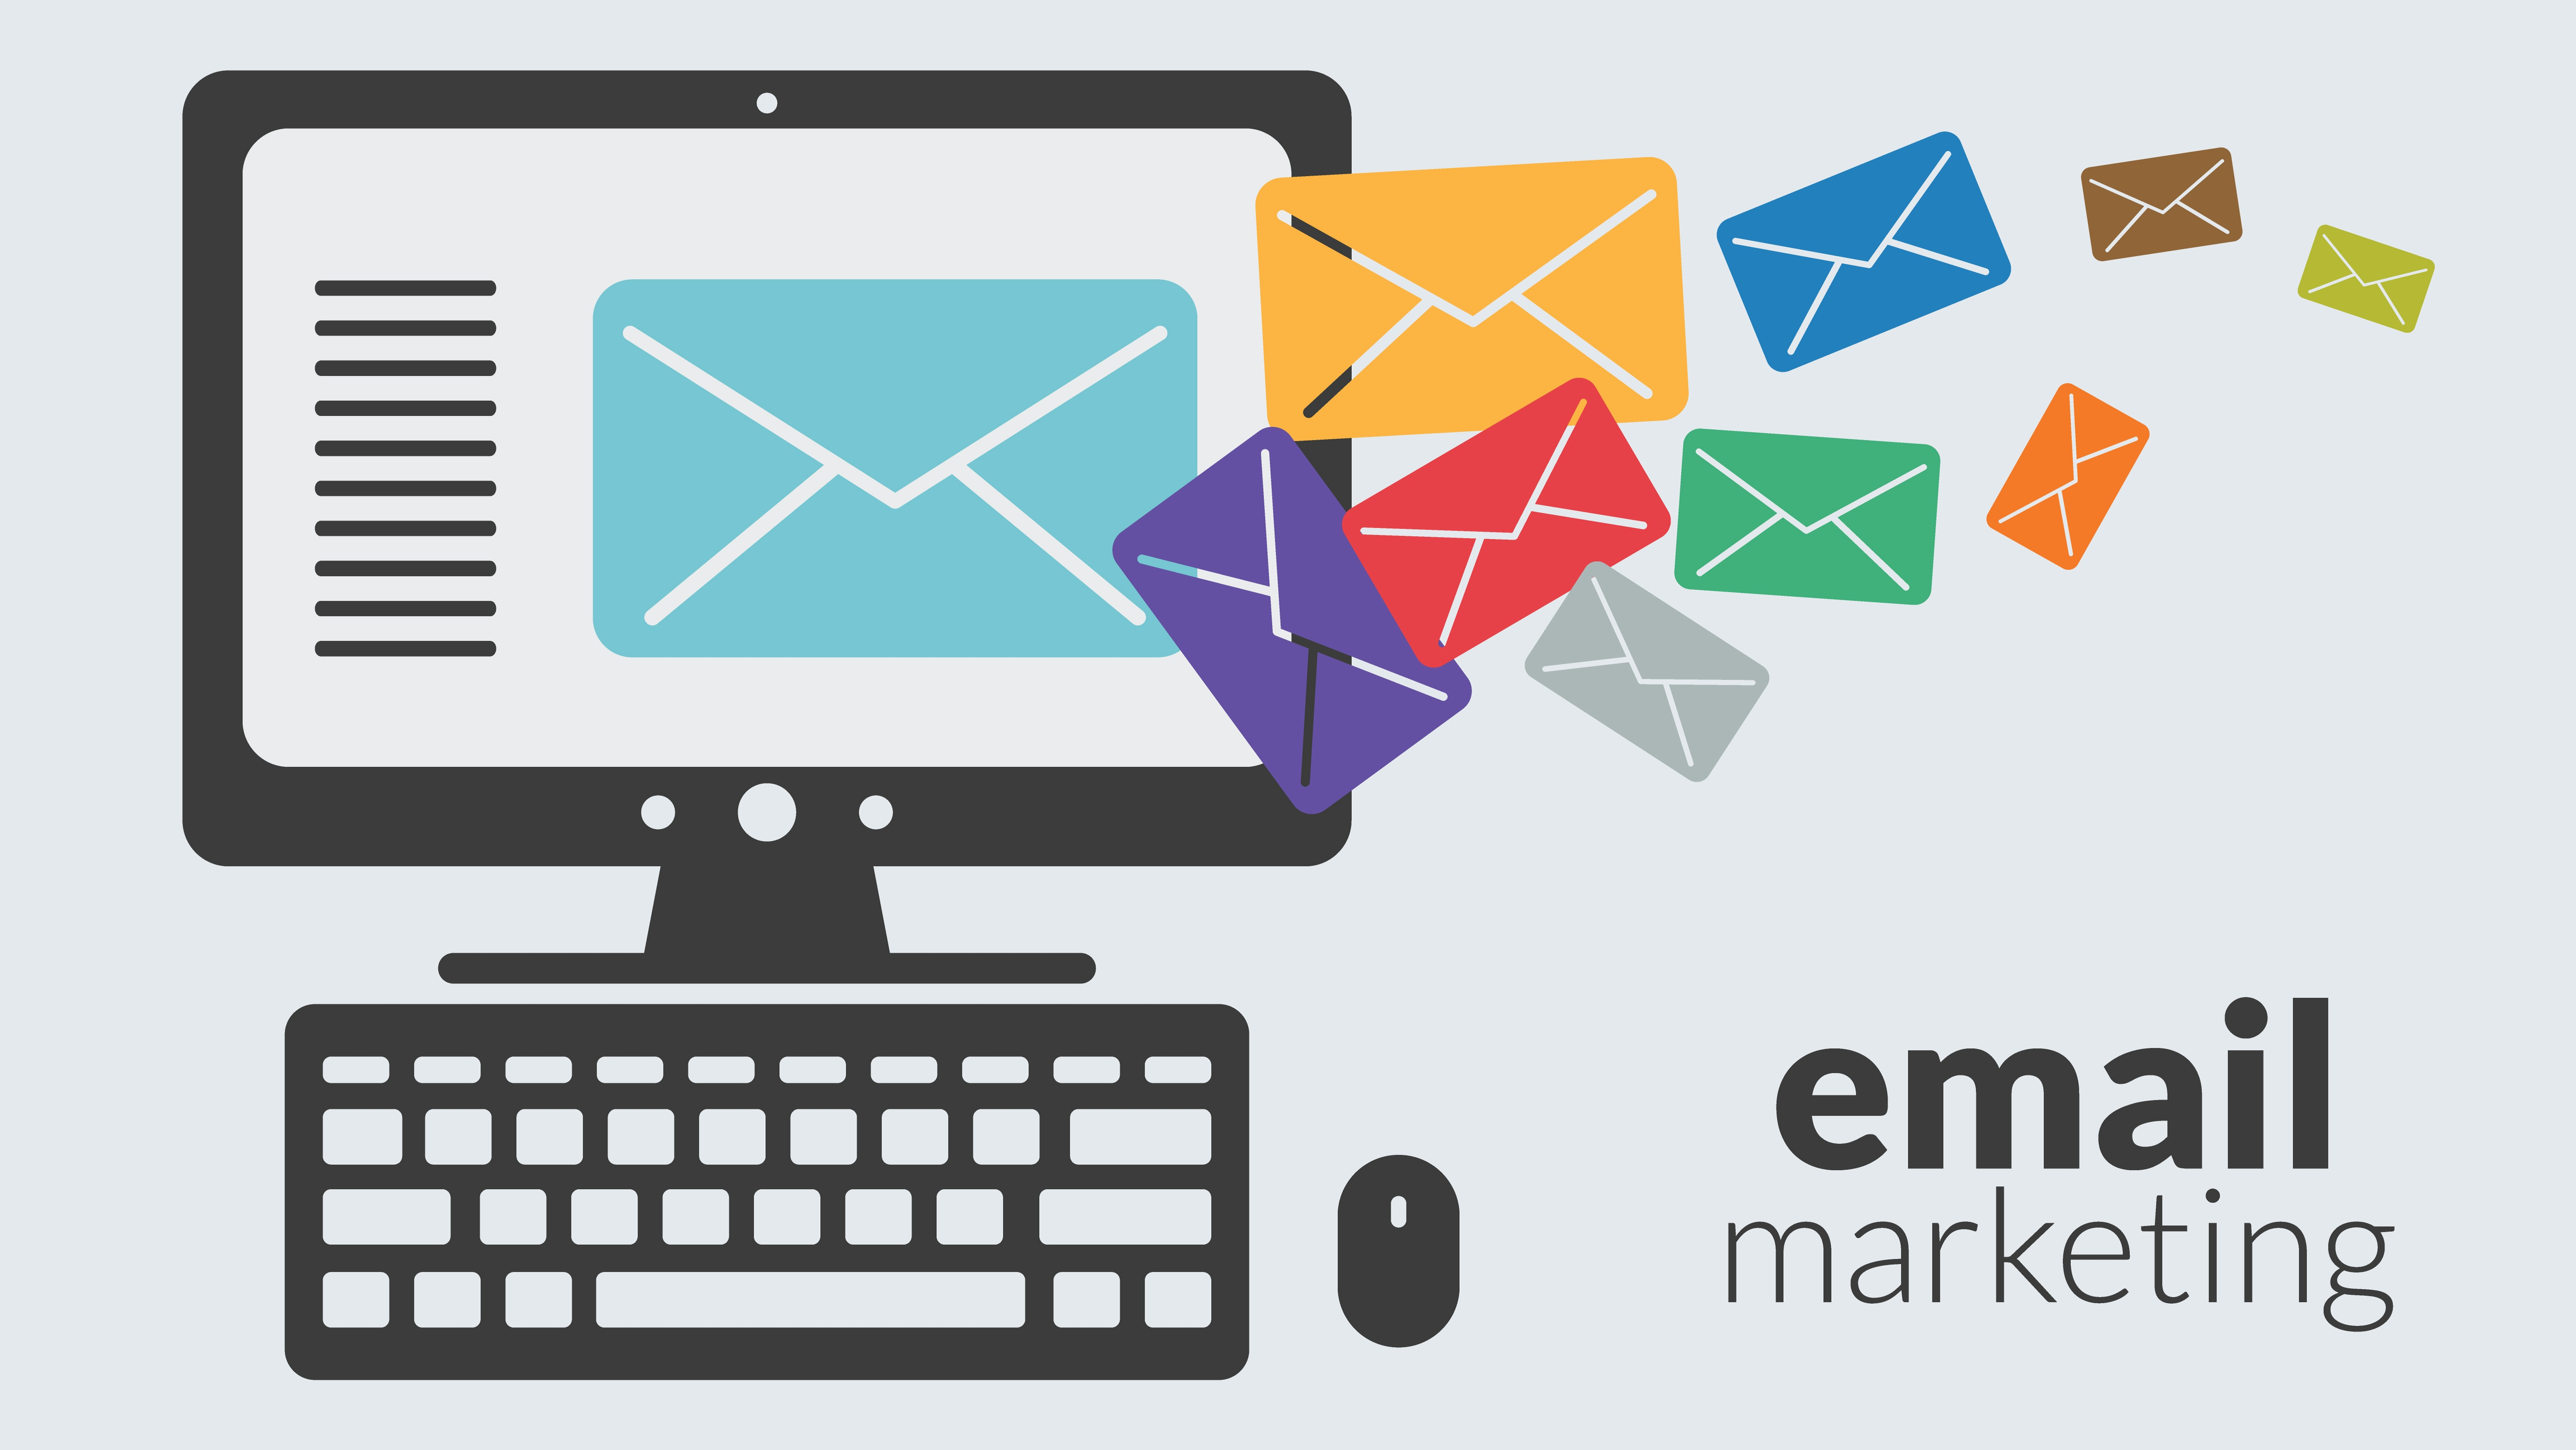 7 Ways to Re-Engage Contacts through Email Marketing